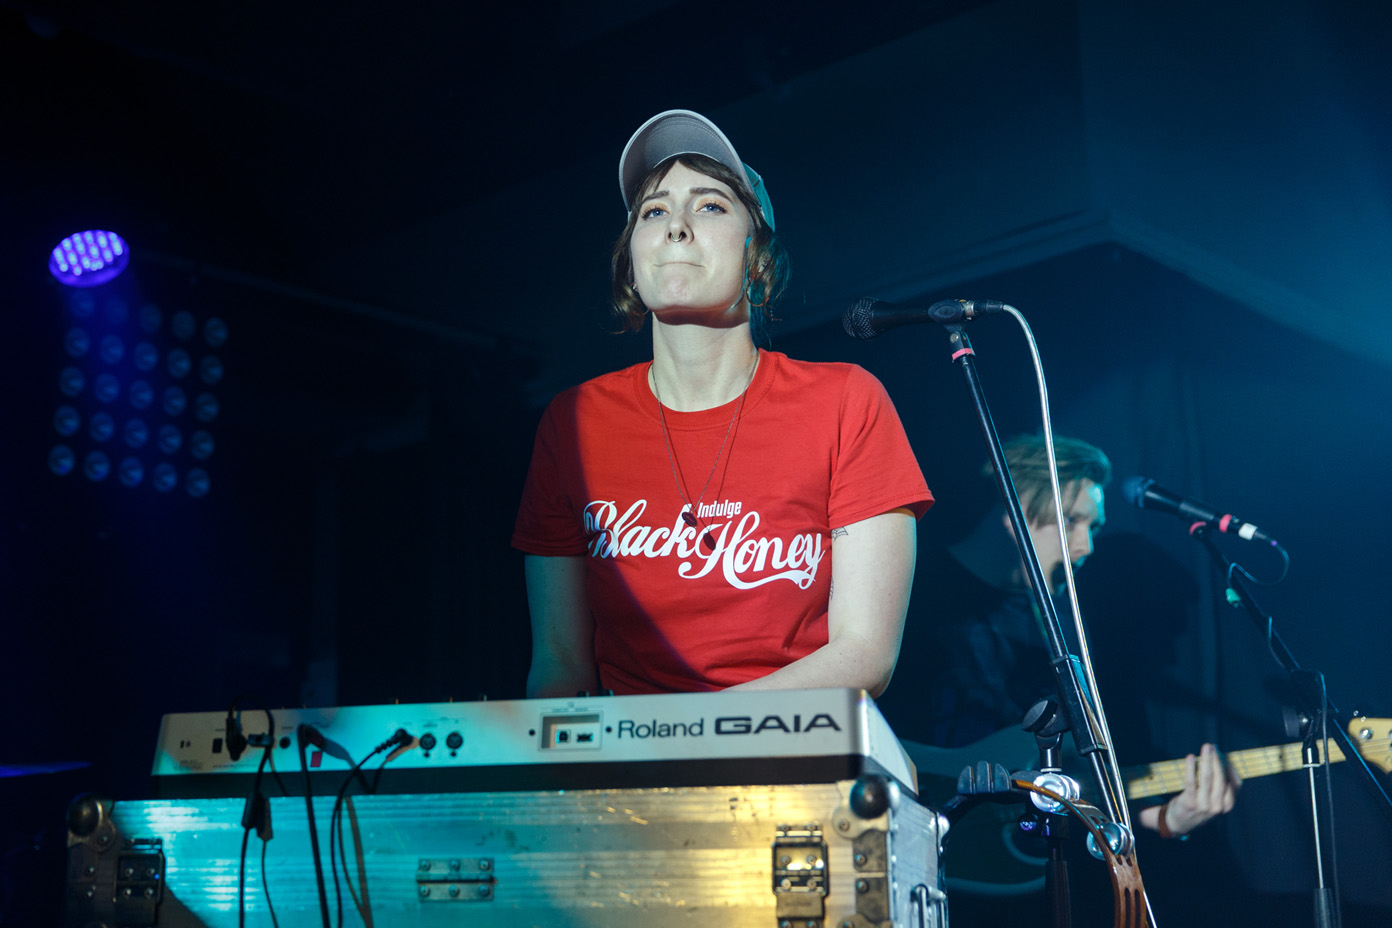 Natassja Shiner of Fickle Friends on stage at 2Q Festival 2017, wearing the merchandise of fellow Brighton band Black Honey. Photo: Katy Blackwood